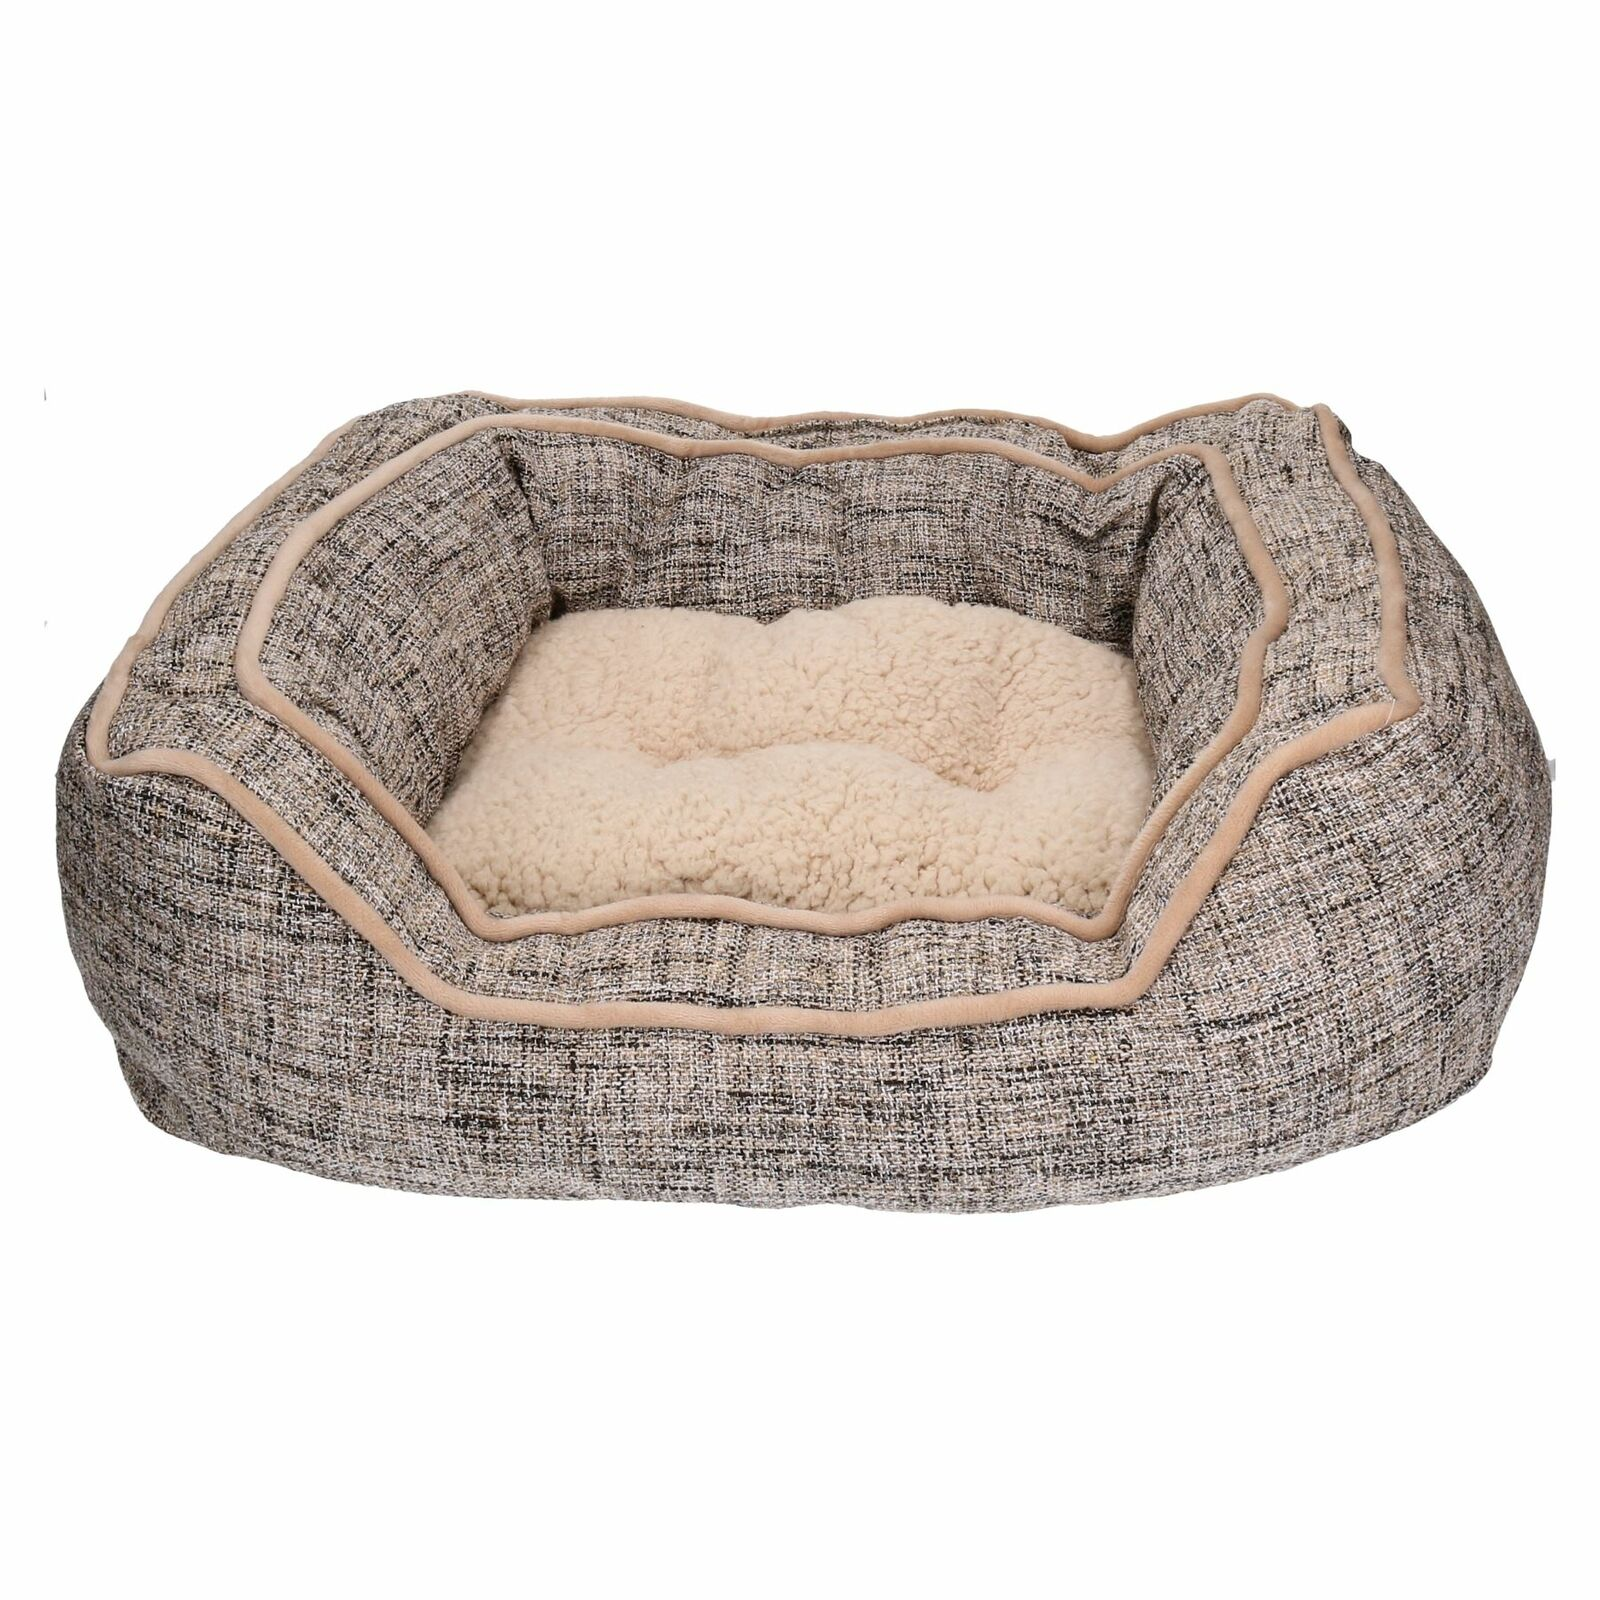 Luxury Slate & Oatmeal Dog Bed -Small - Damaged Bed